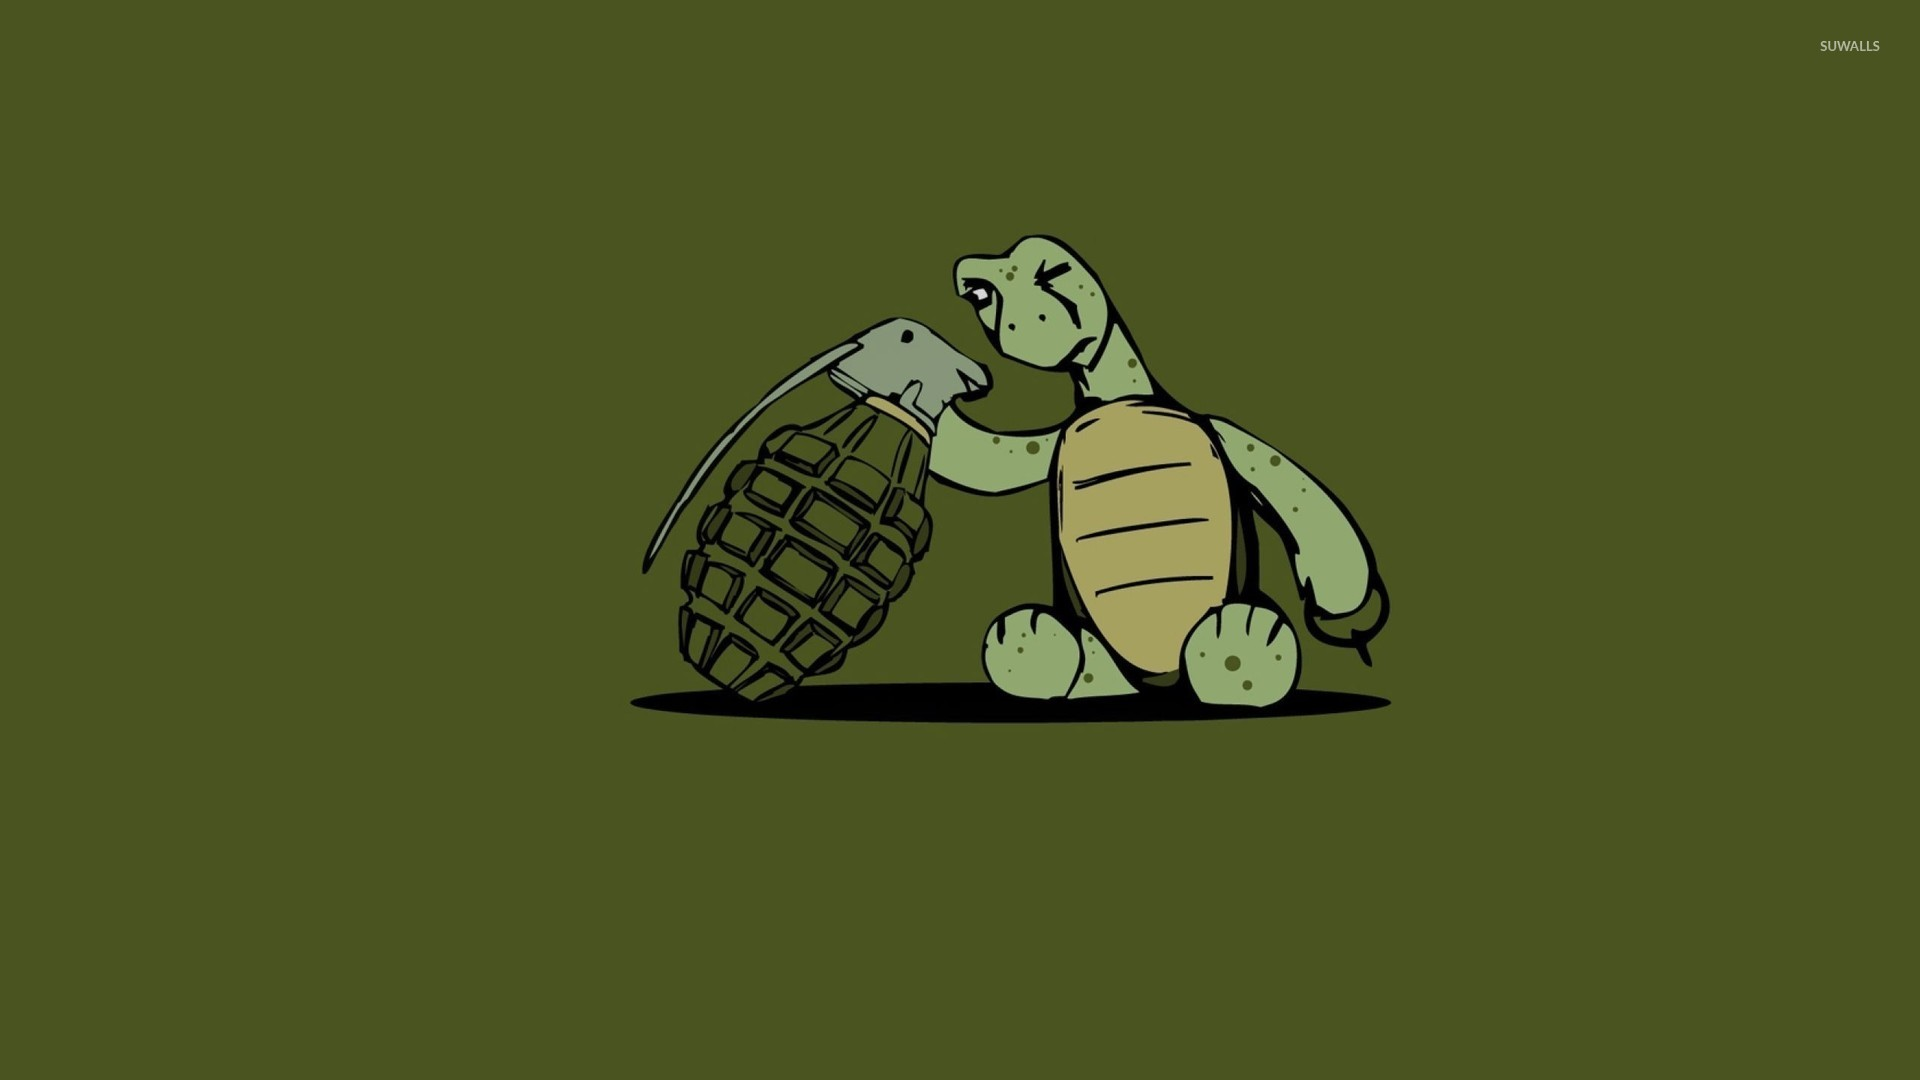 Cute Dog Wallpapers With Quotes Turtle Looking At A Grenade Wallpaper Funny Wallpapers